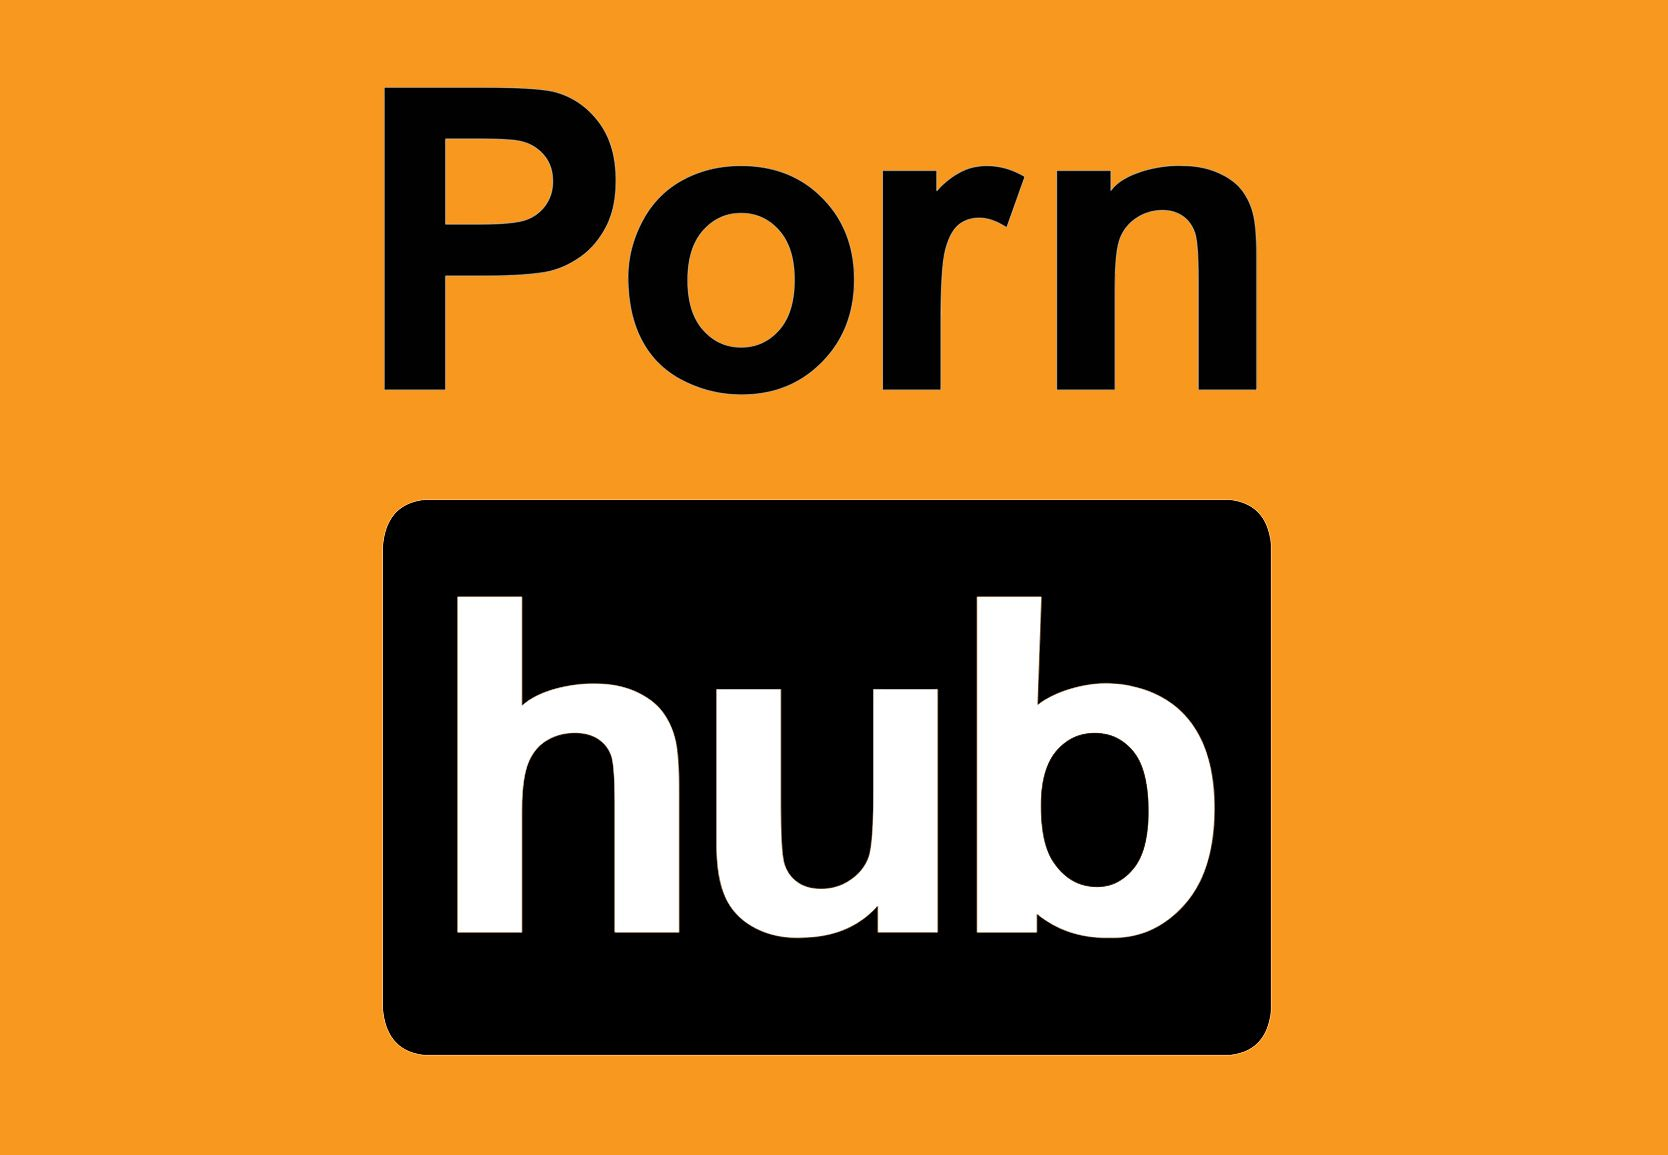 https://data.nssmag.com/images/galleries/15362/nssmag-Pornhub-logo.jpg